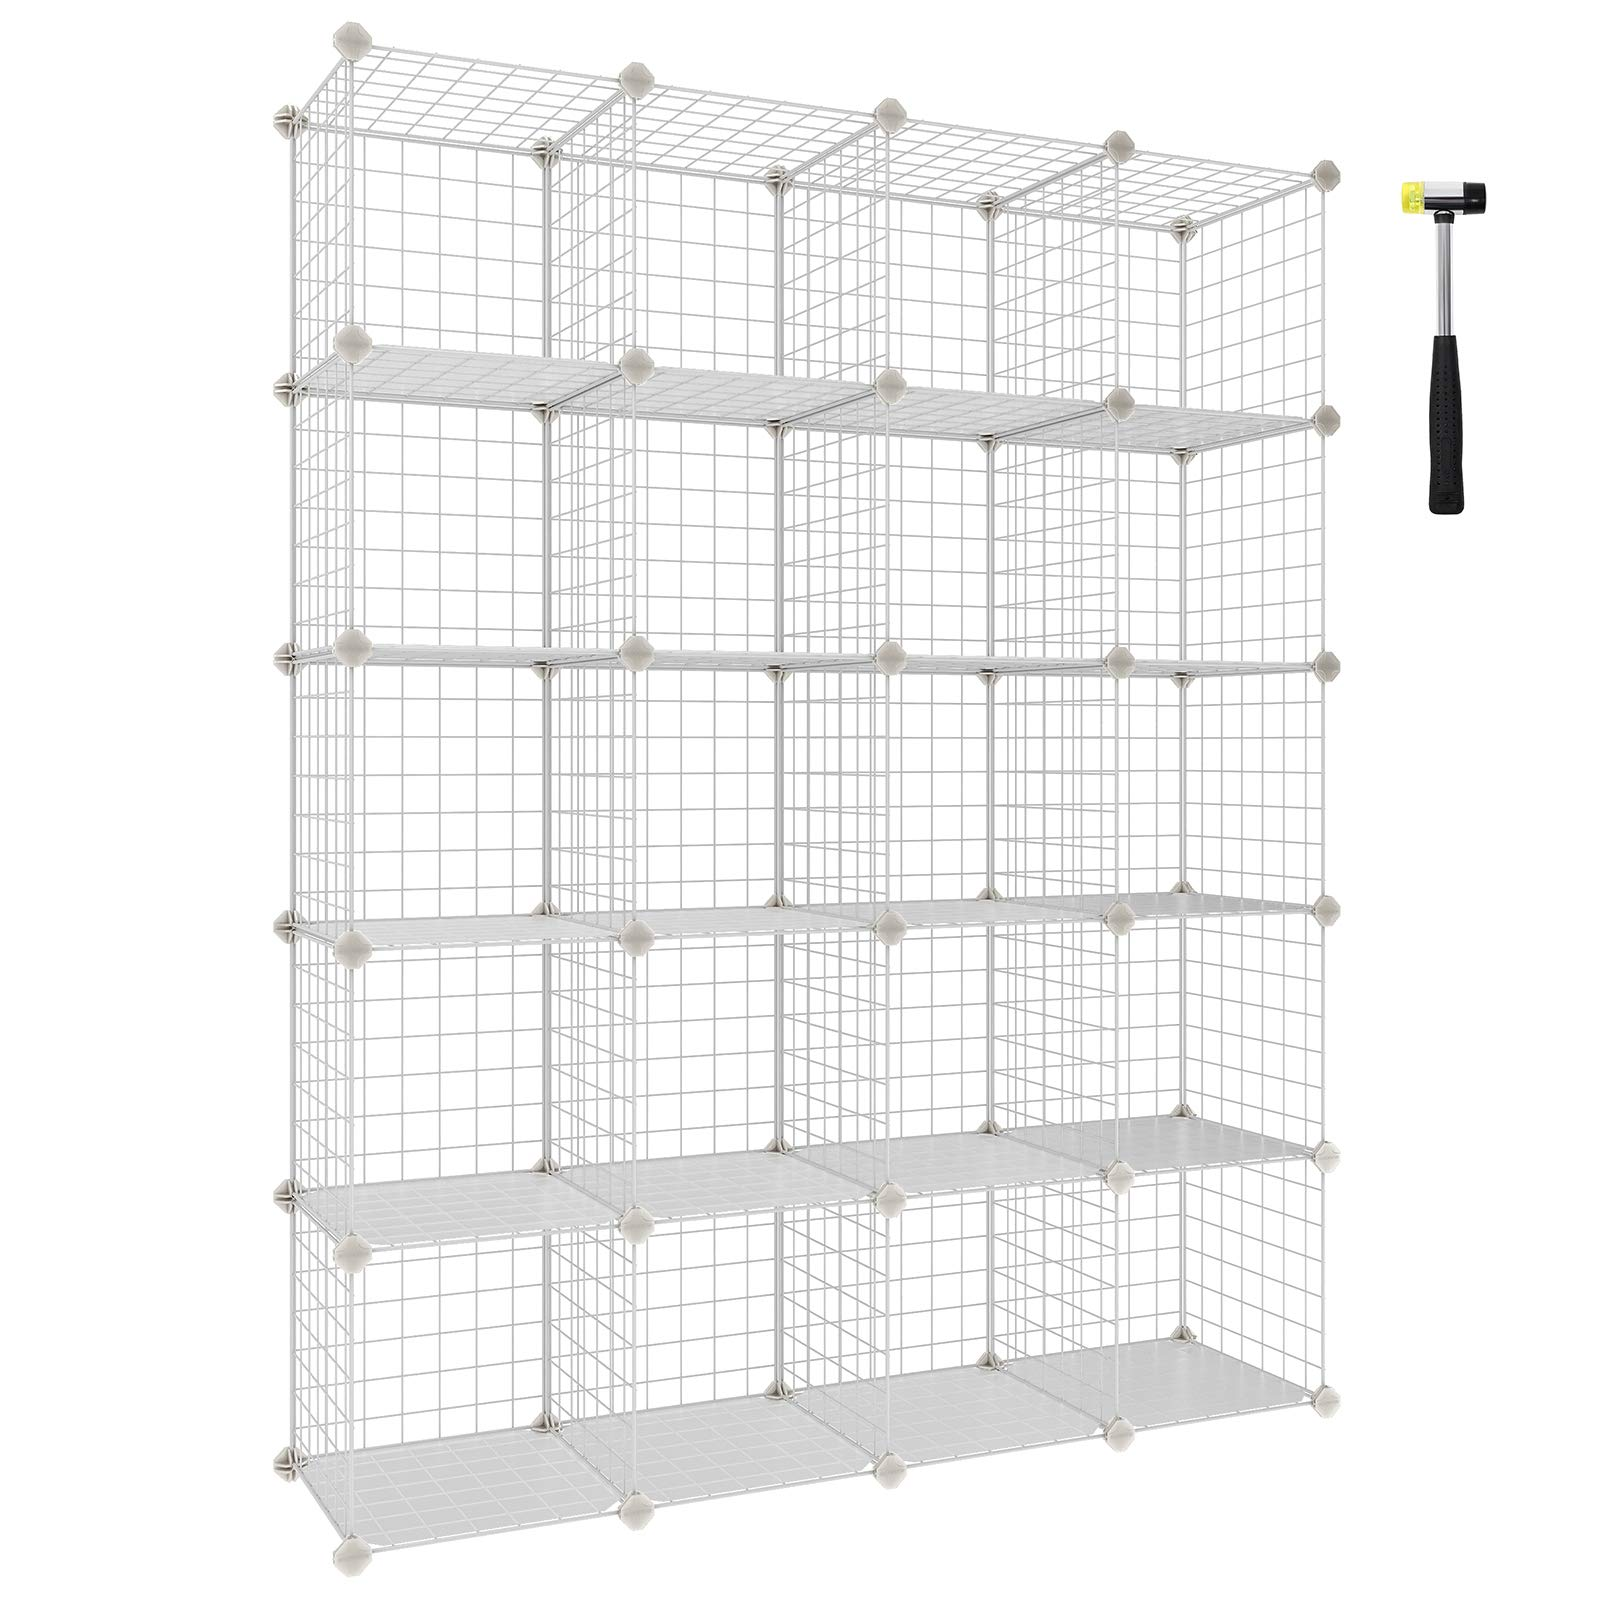 SONGMICS Wire Cube Storage, 20-Cube Modular Rack, Storage Shelves, PP Plastic Shelf Liners Included, 48.4'' L x 12.2'' W x 60.2'' H White ULPI45W